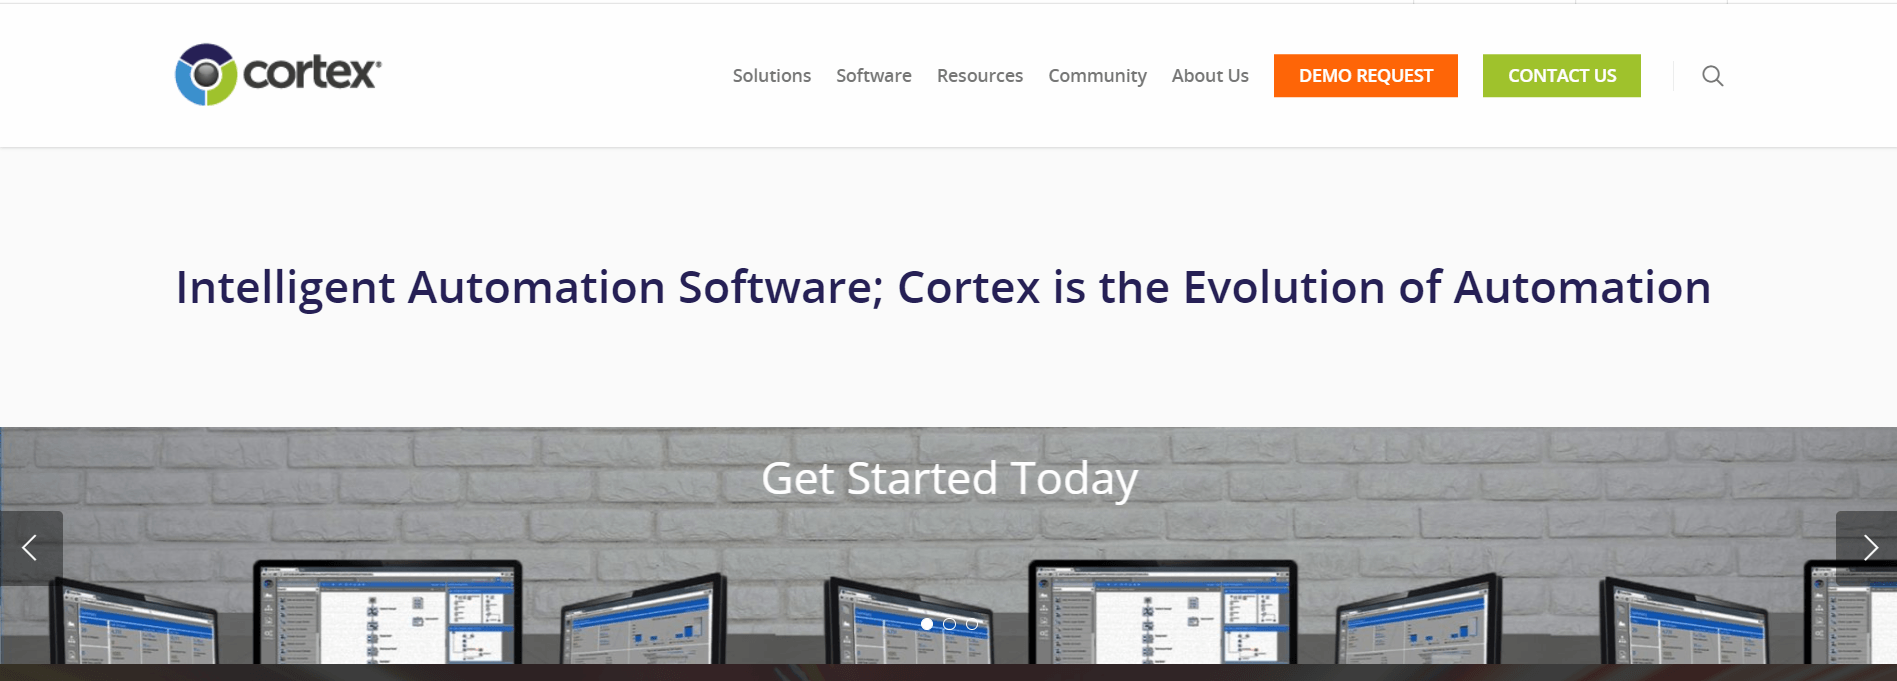 Cortex Intelligent Automation